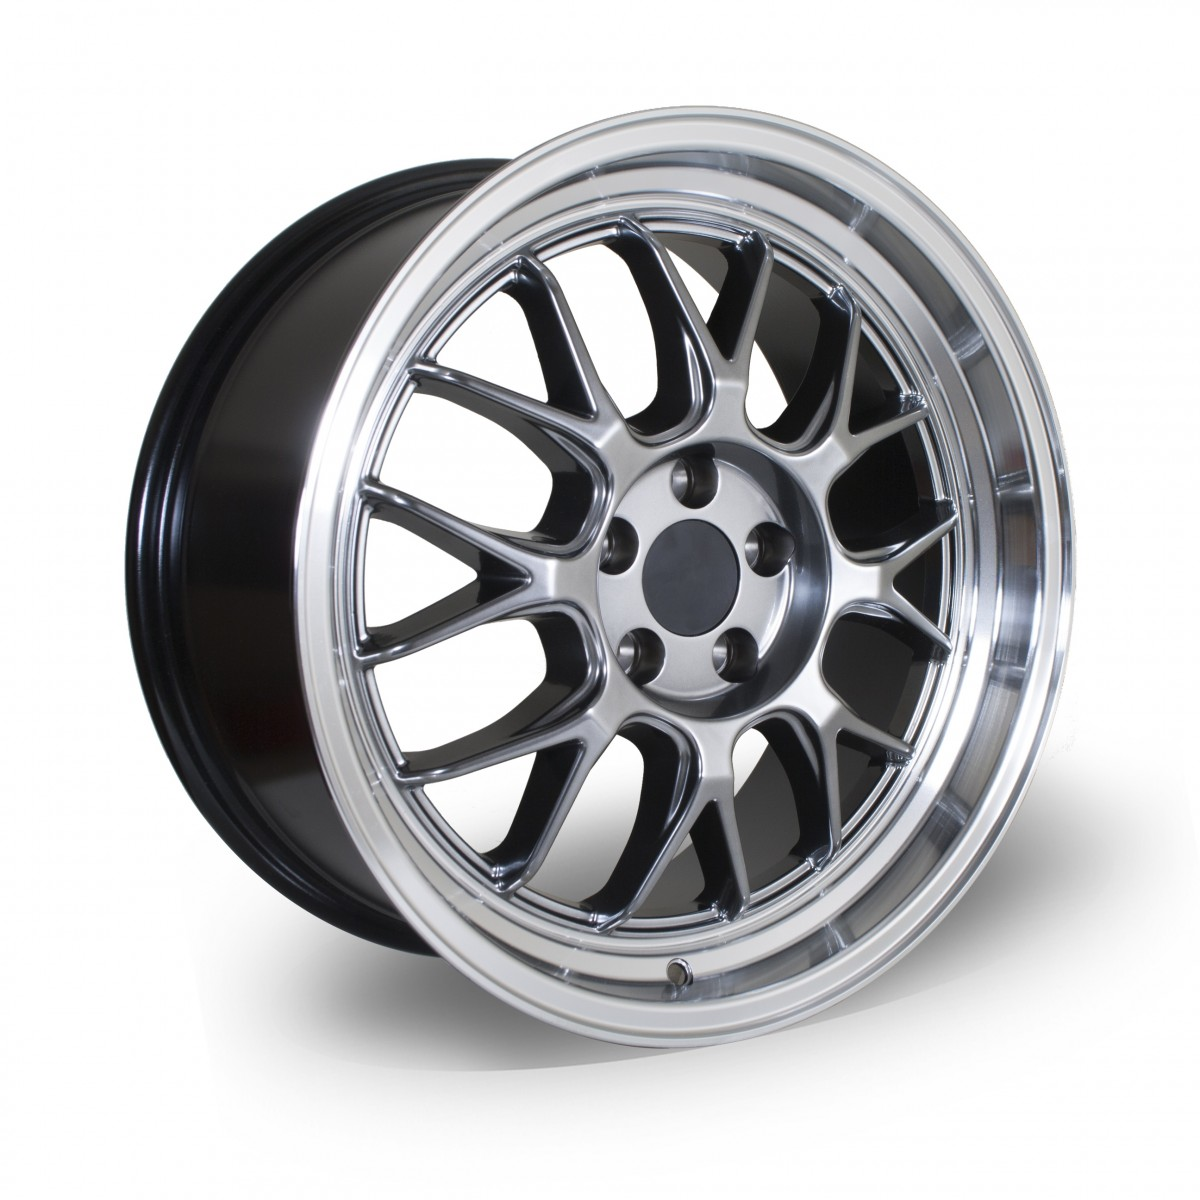 White Label Type M 17x8.0 5x100 ET35 Hyper Black with Polished Lip